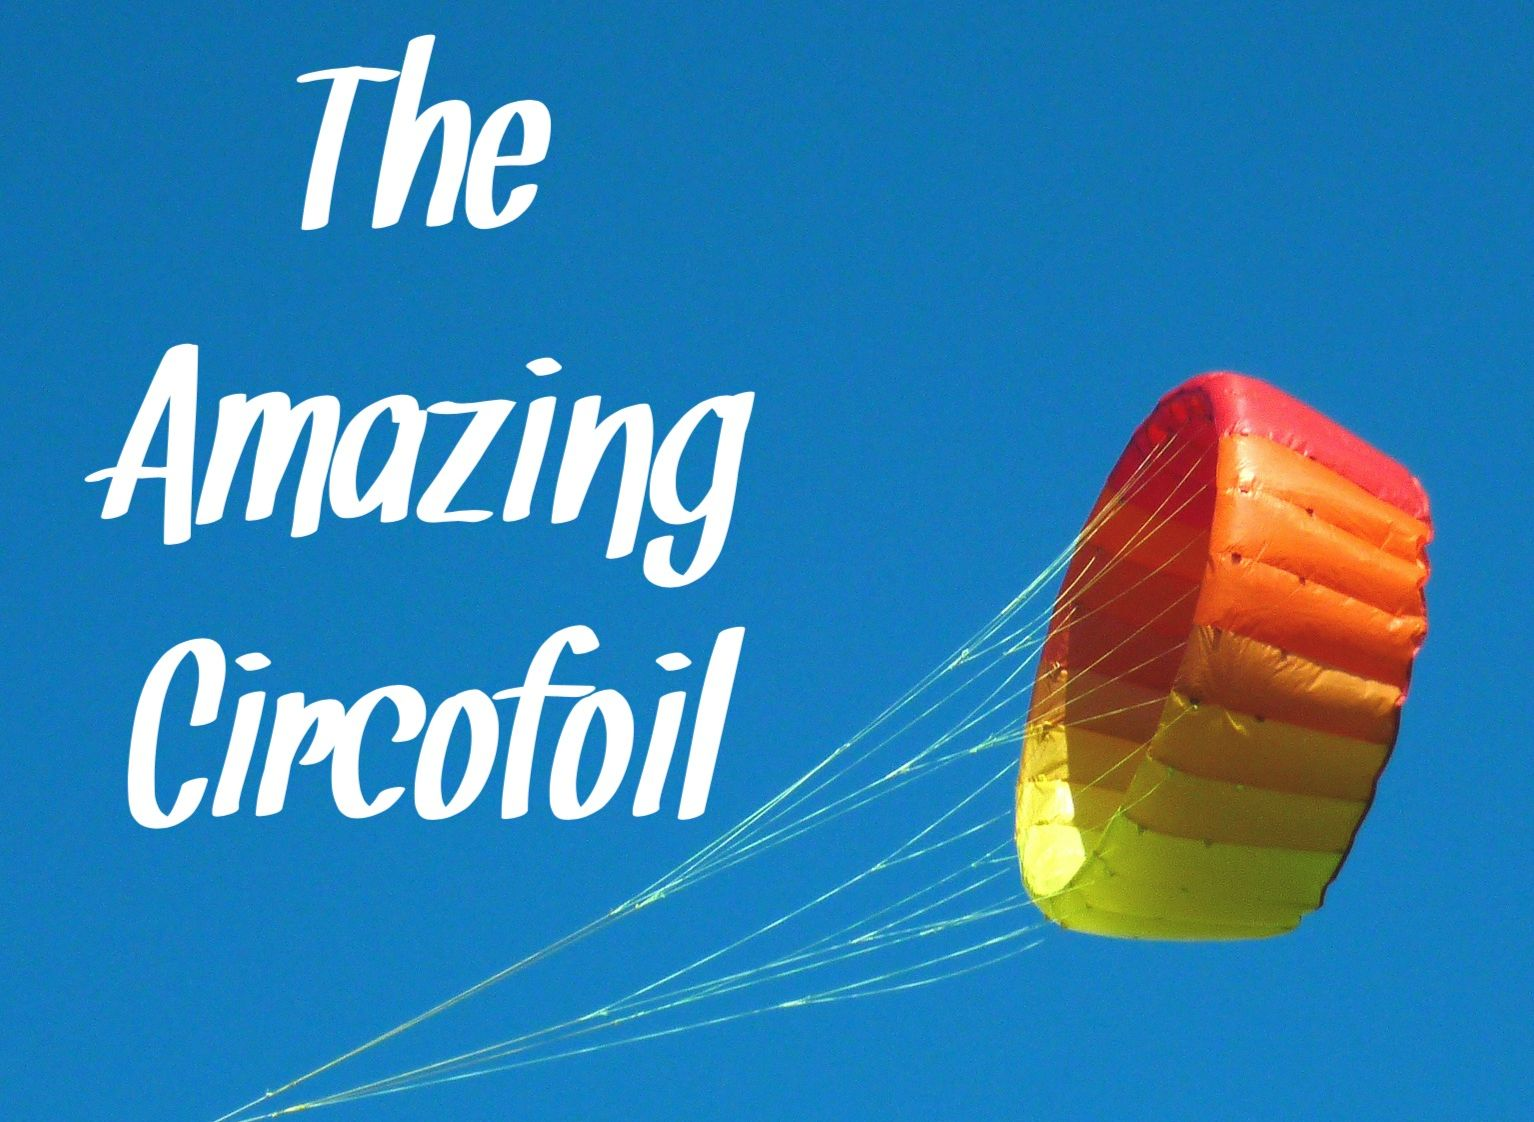 The Amazing Circofoil